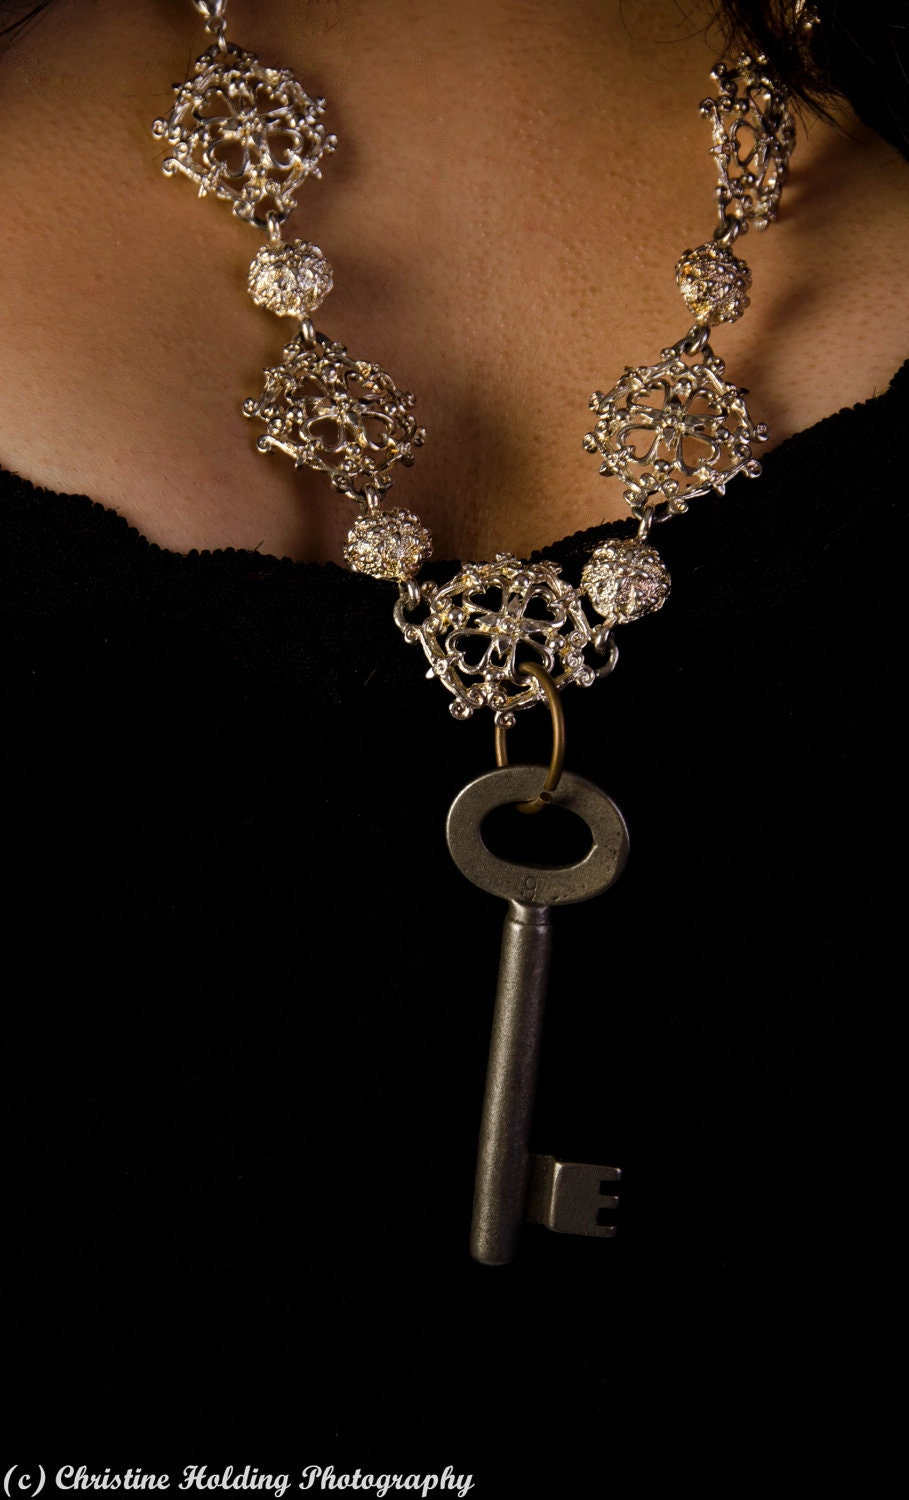 filigree necklace with antique skeleton key